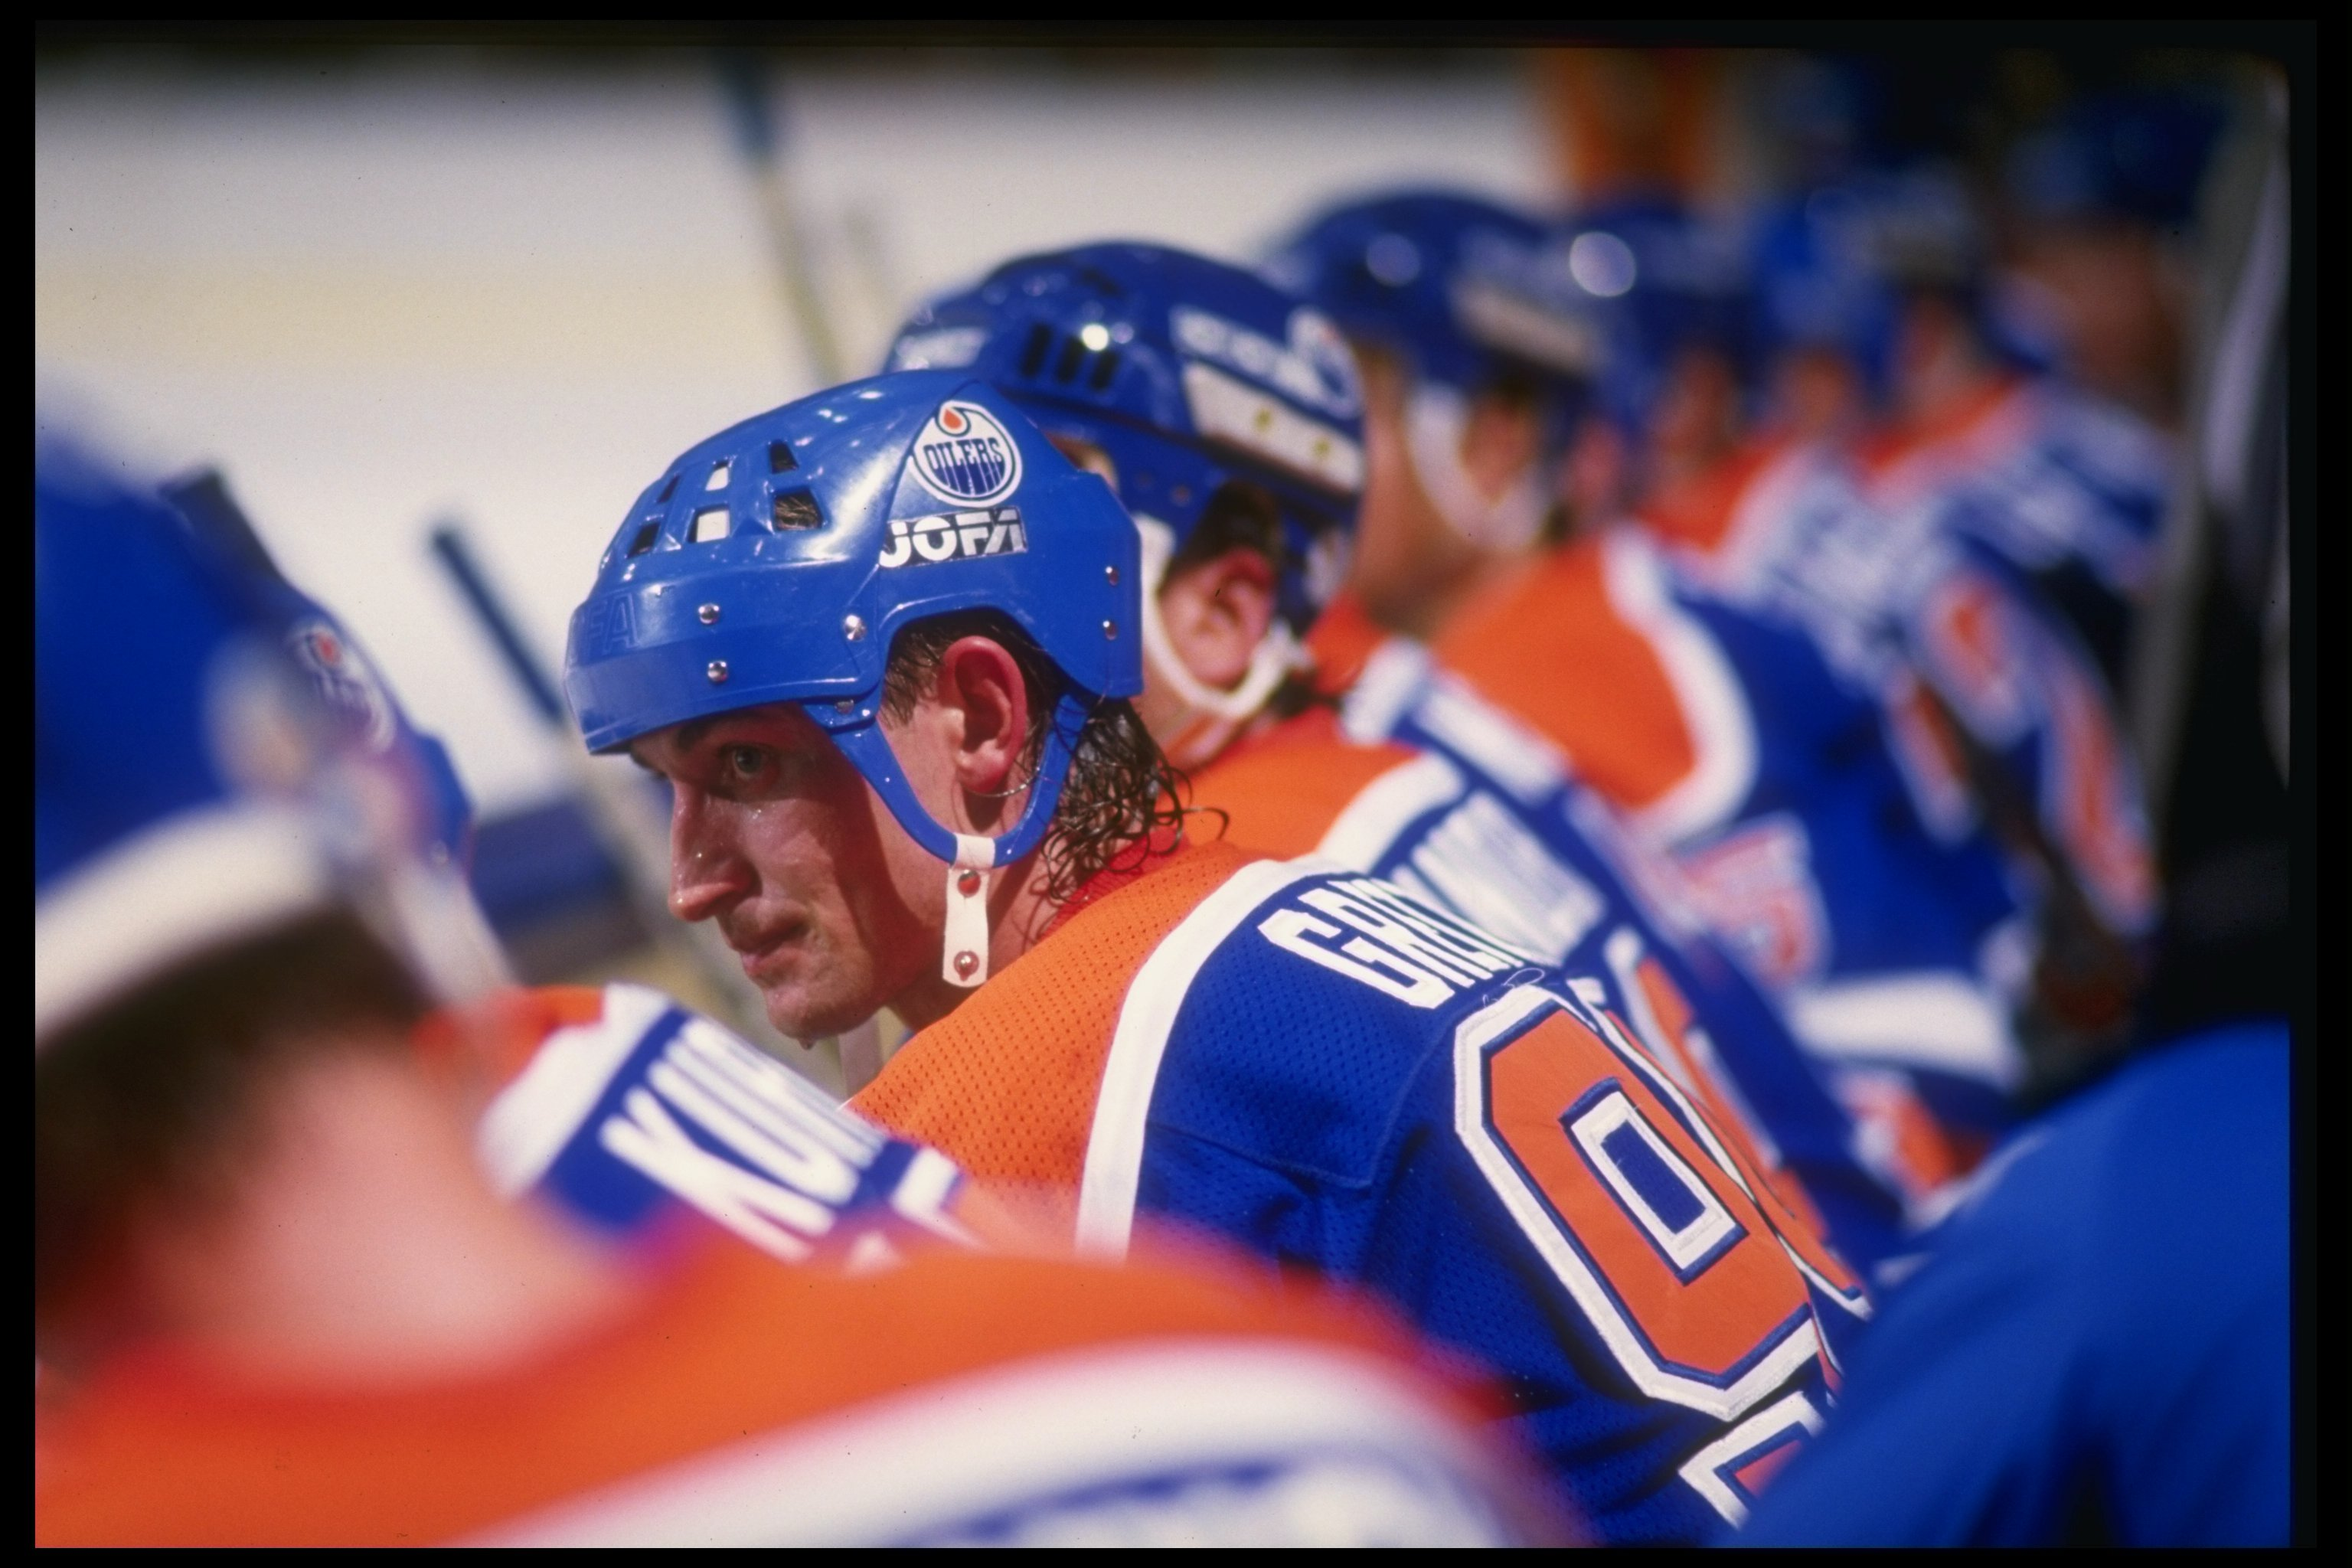 1987:  Center Wayne Gretzky of the Edmonton Oilers looks on during a game against the Los Angeles Kings at the Great Western Forum in Inglewood, California. Mandatory Credit: Mike Powell  /Allsport